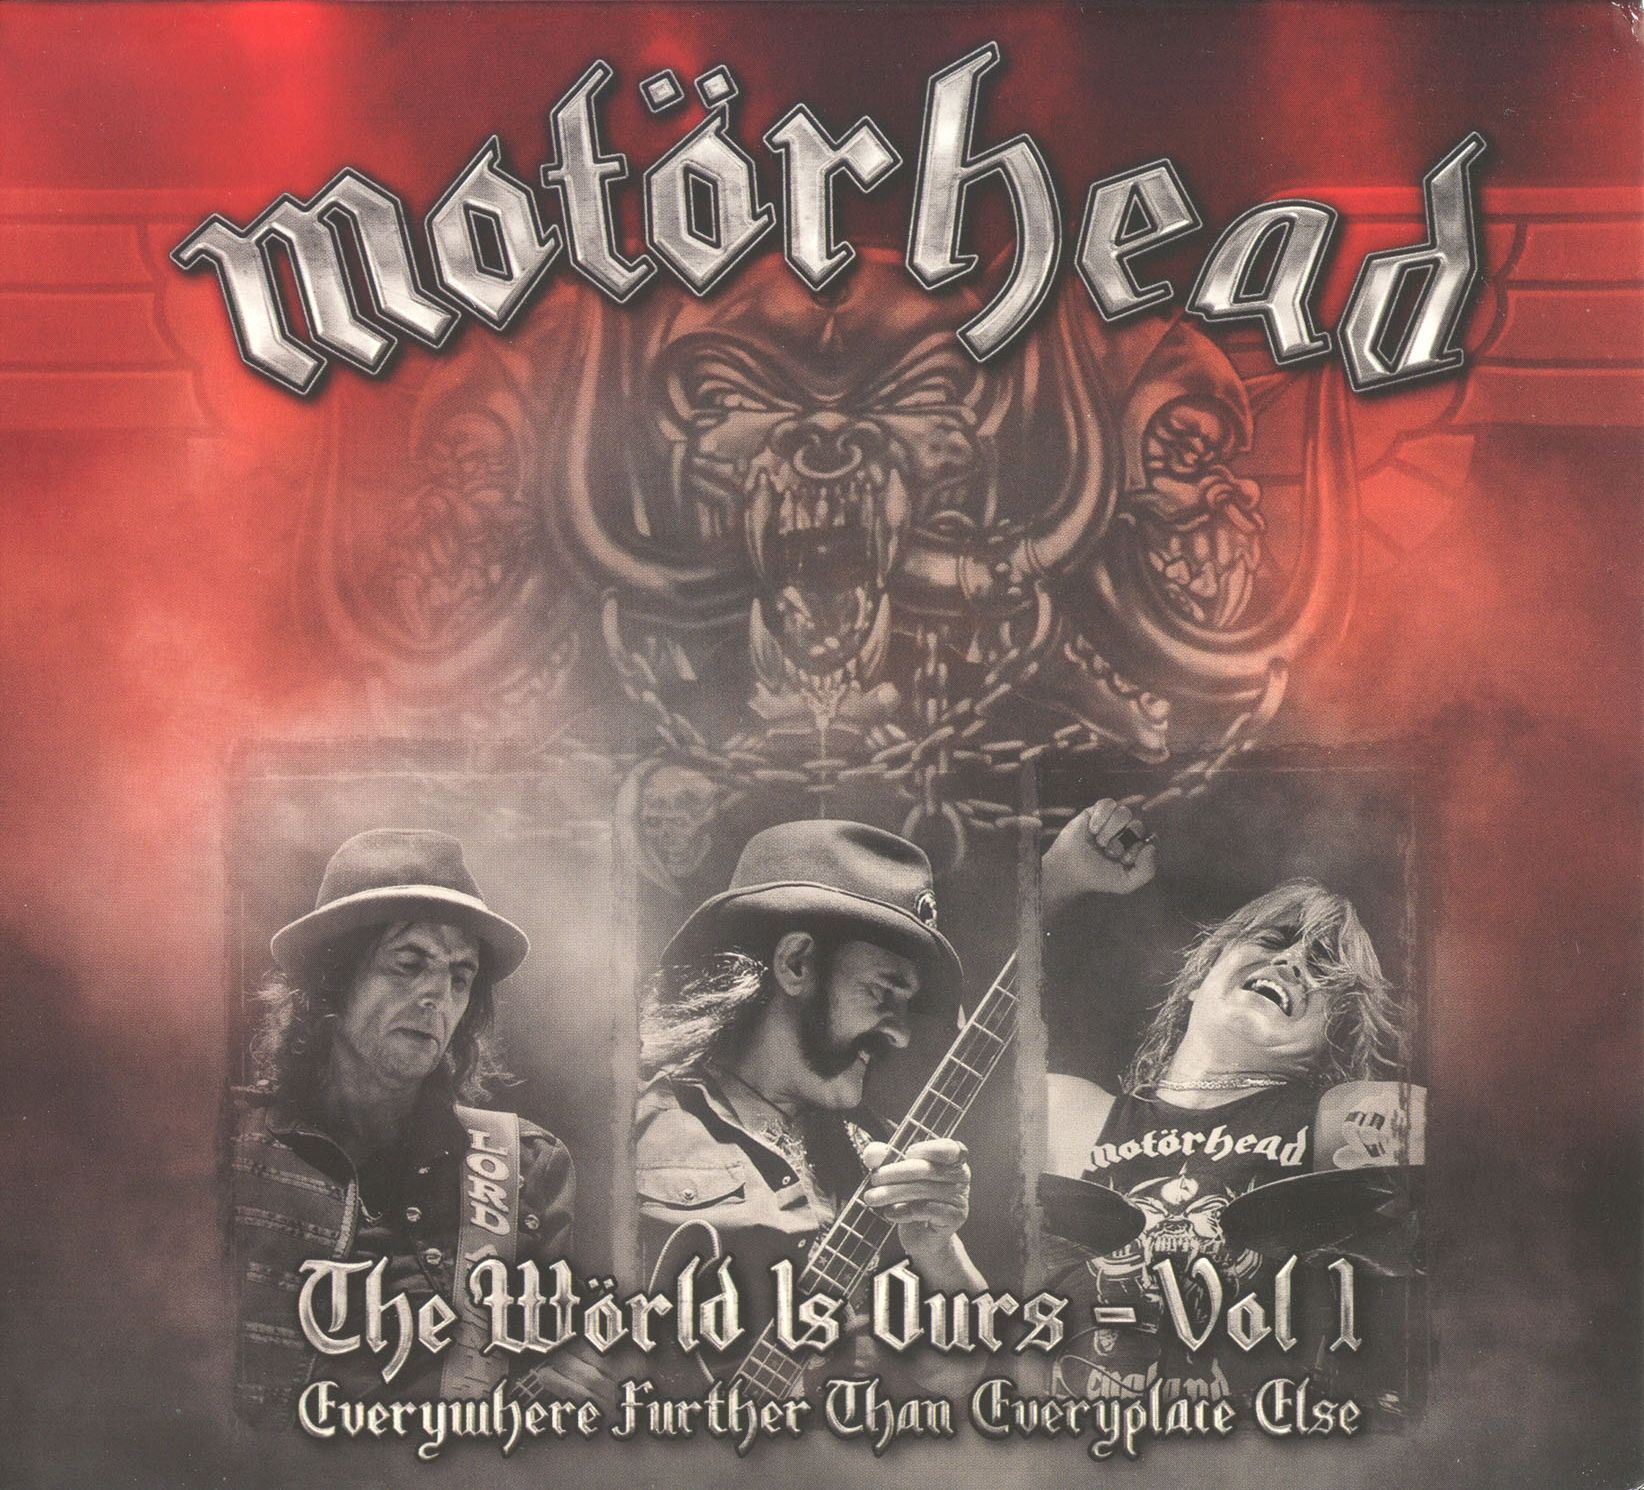 Motörhead - The Wörld Is Ours - Volume 1 - Everywhere Further Than Everyplace Else album cover